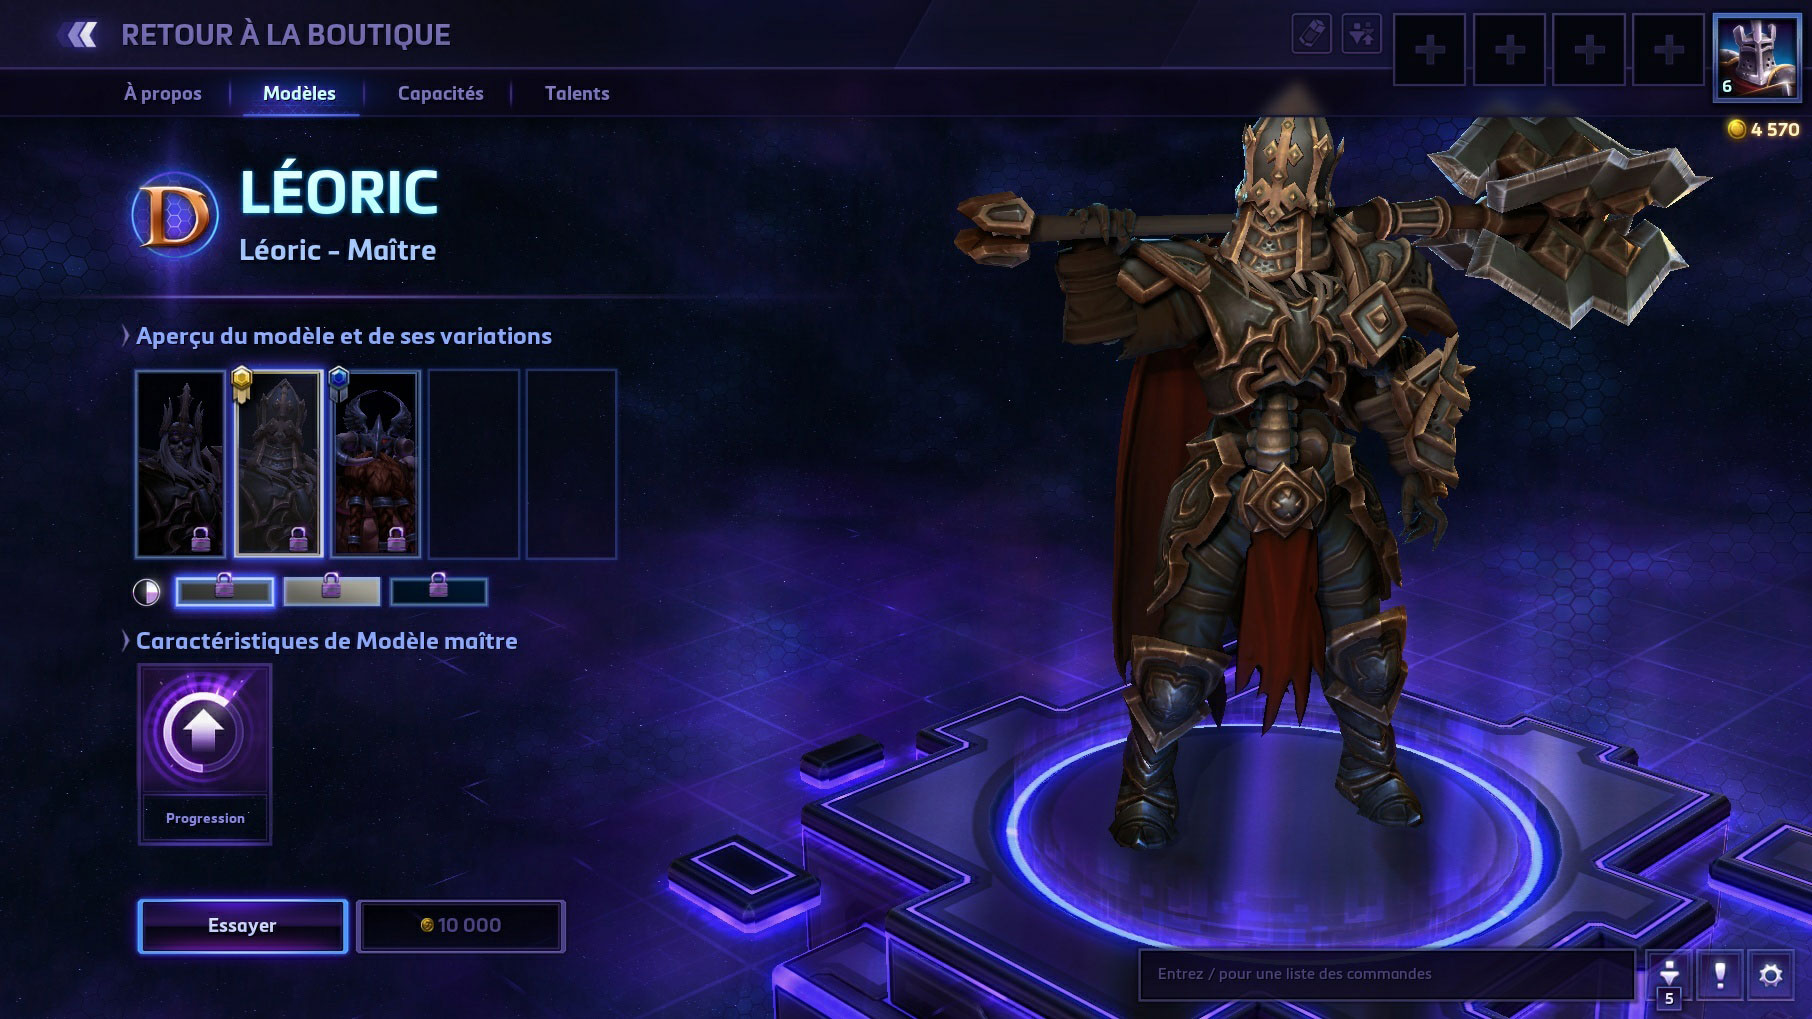 Apparence de Léoric dans Heroes of the Storm.